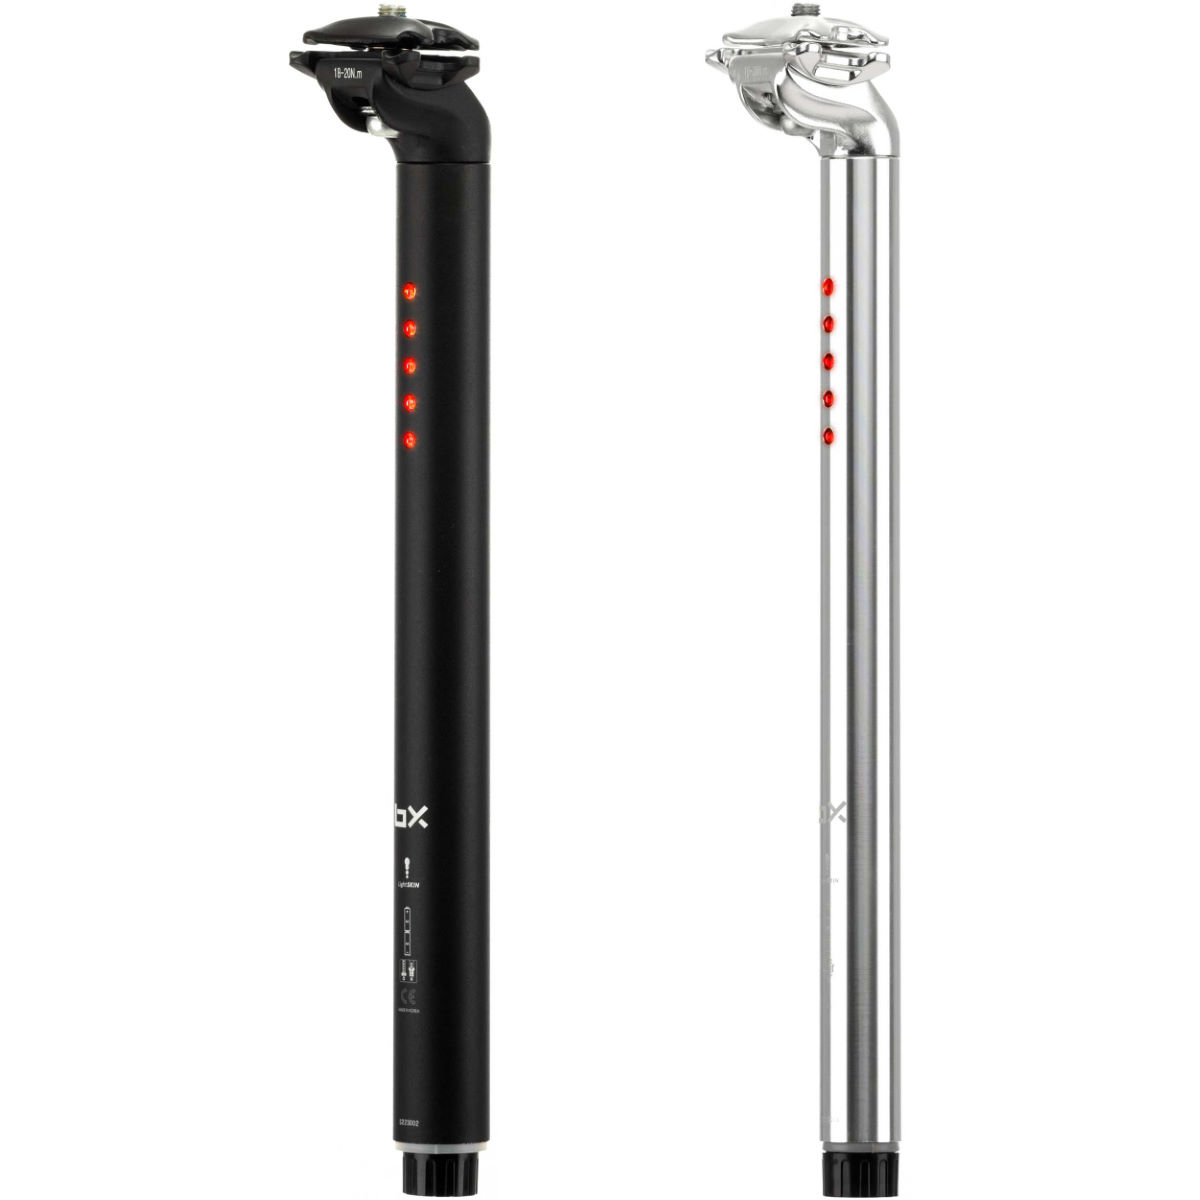 Brand-X Brand-X LightSKIN Seatpost Light   Rear Lights